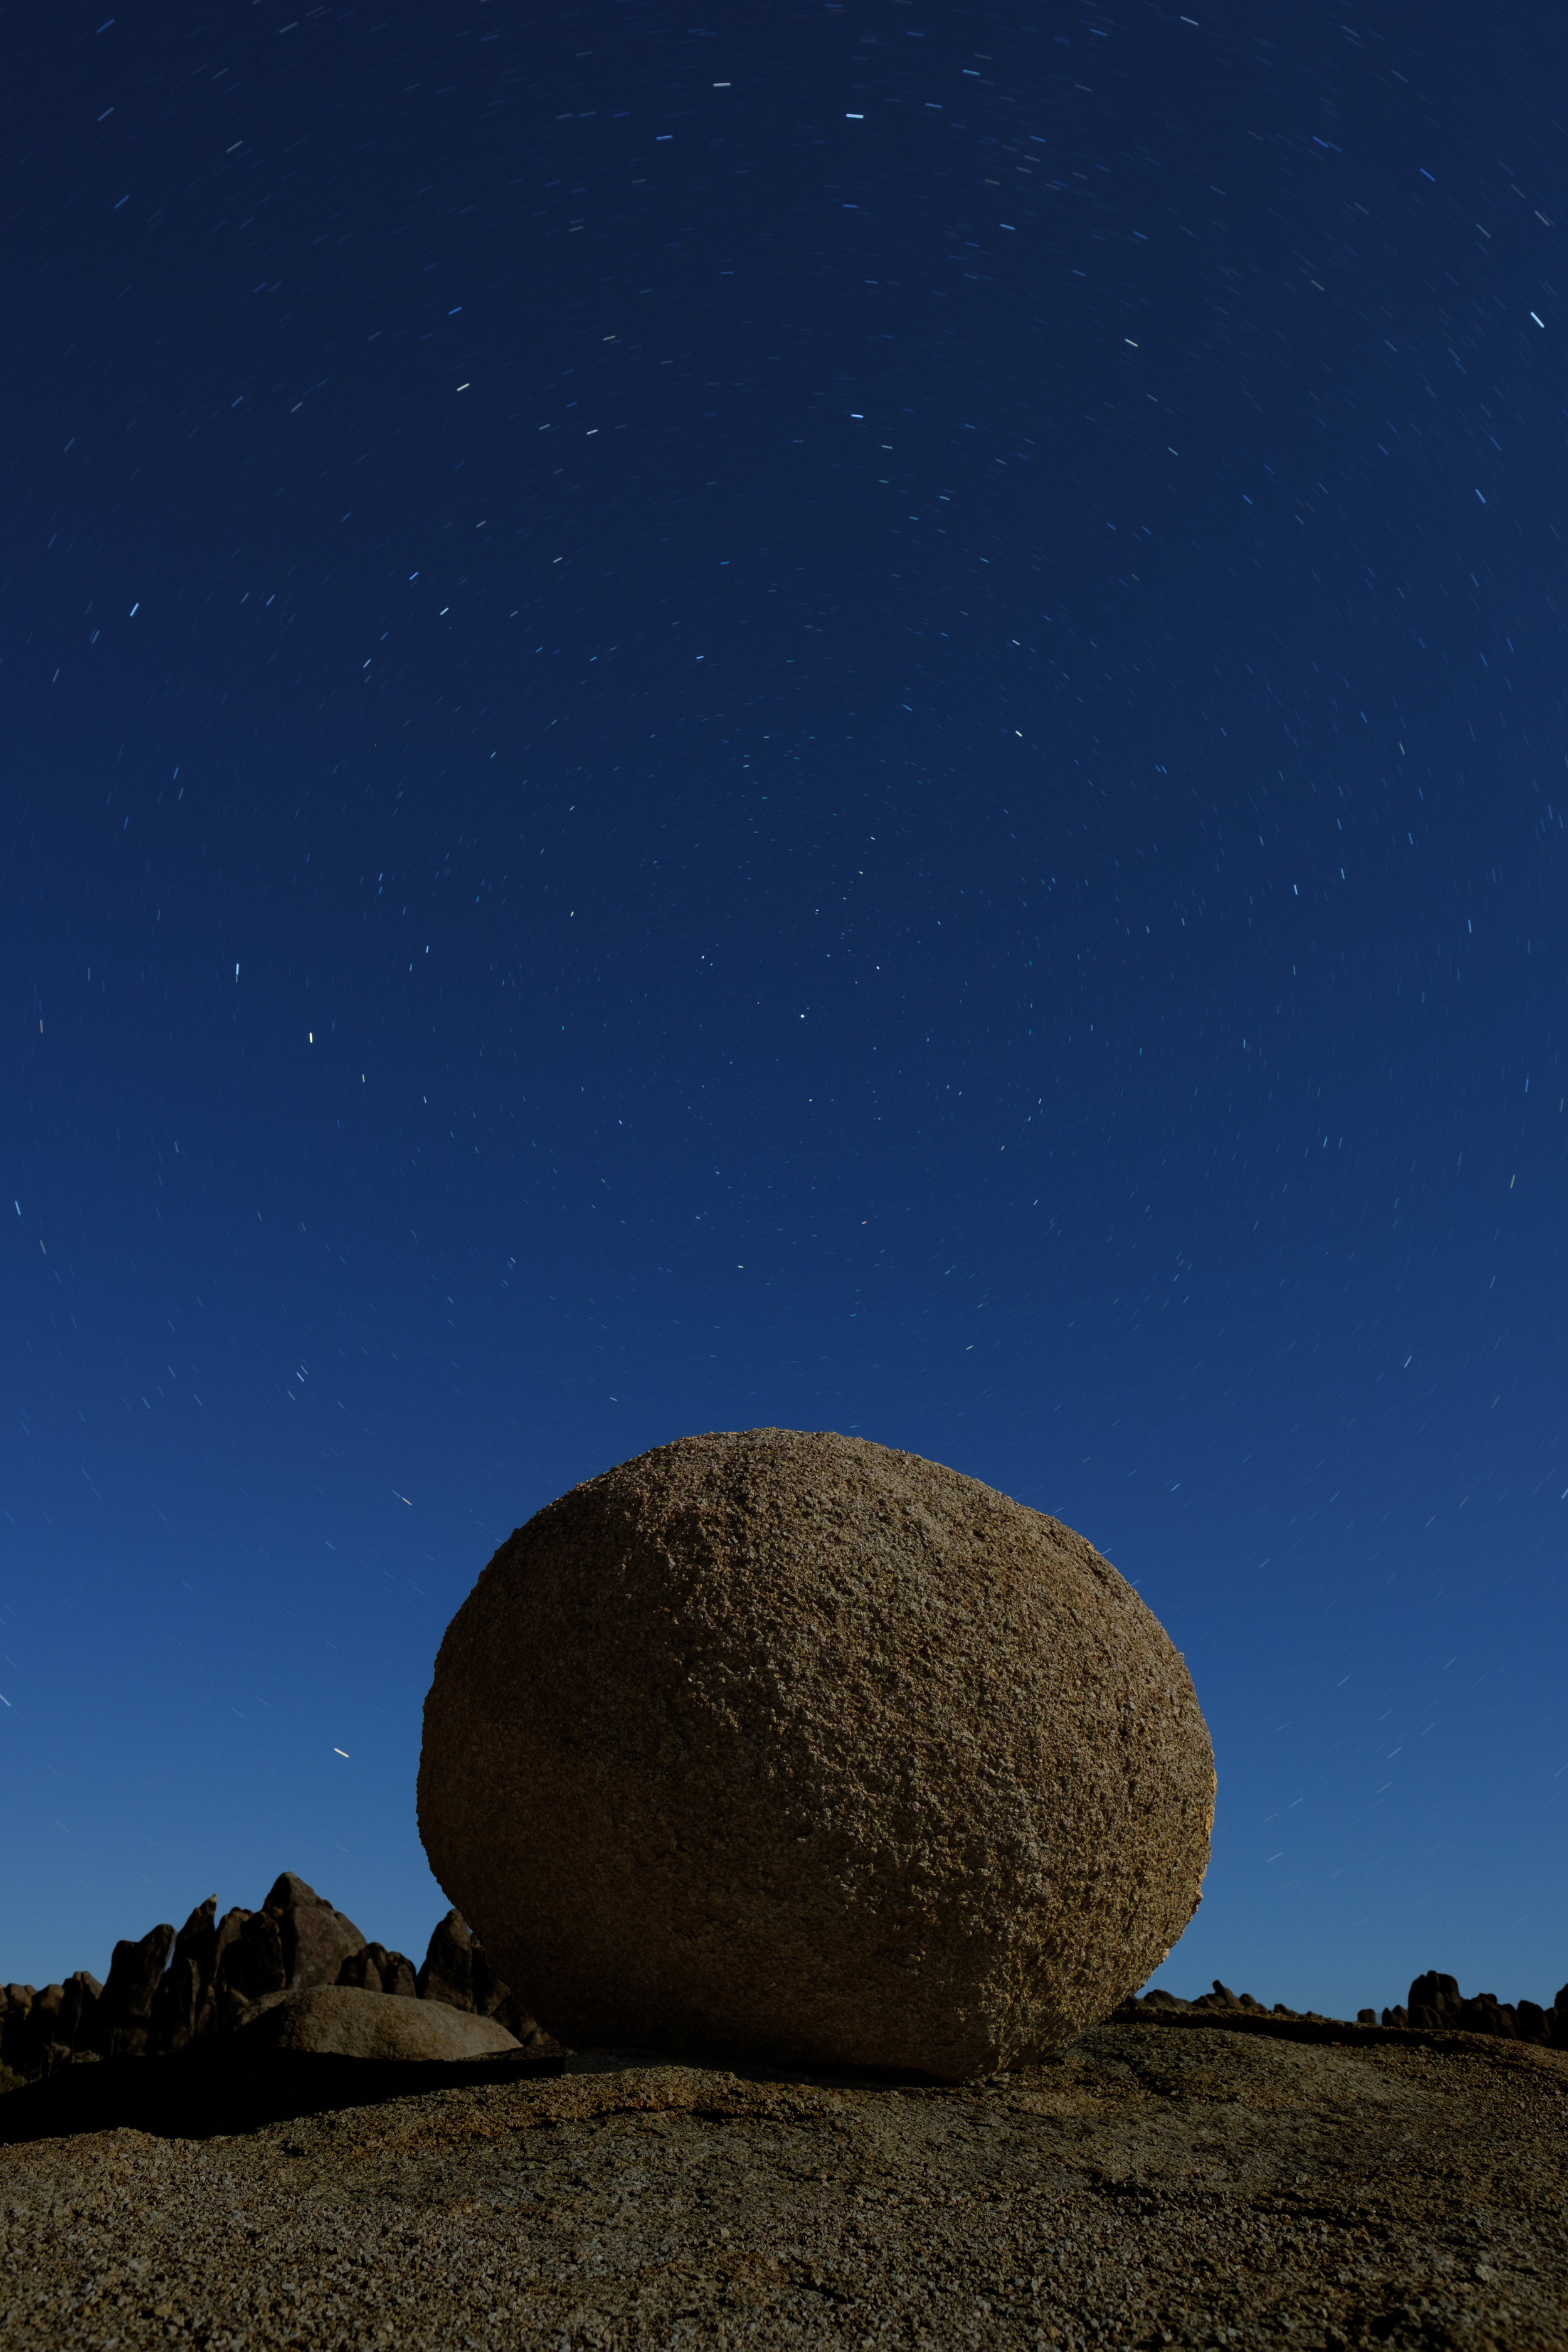 Compose, focus, ambient light exposure. Fuji X-T2 with 16mm f/4 lens. 4 minutes, f/5.6, ISO 100.